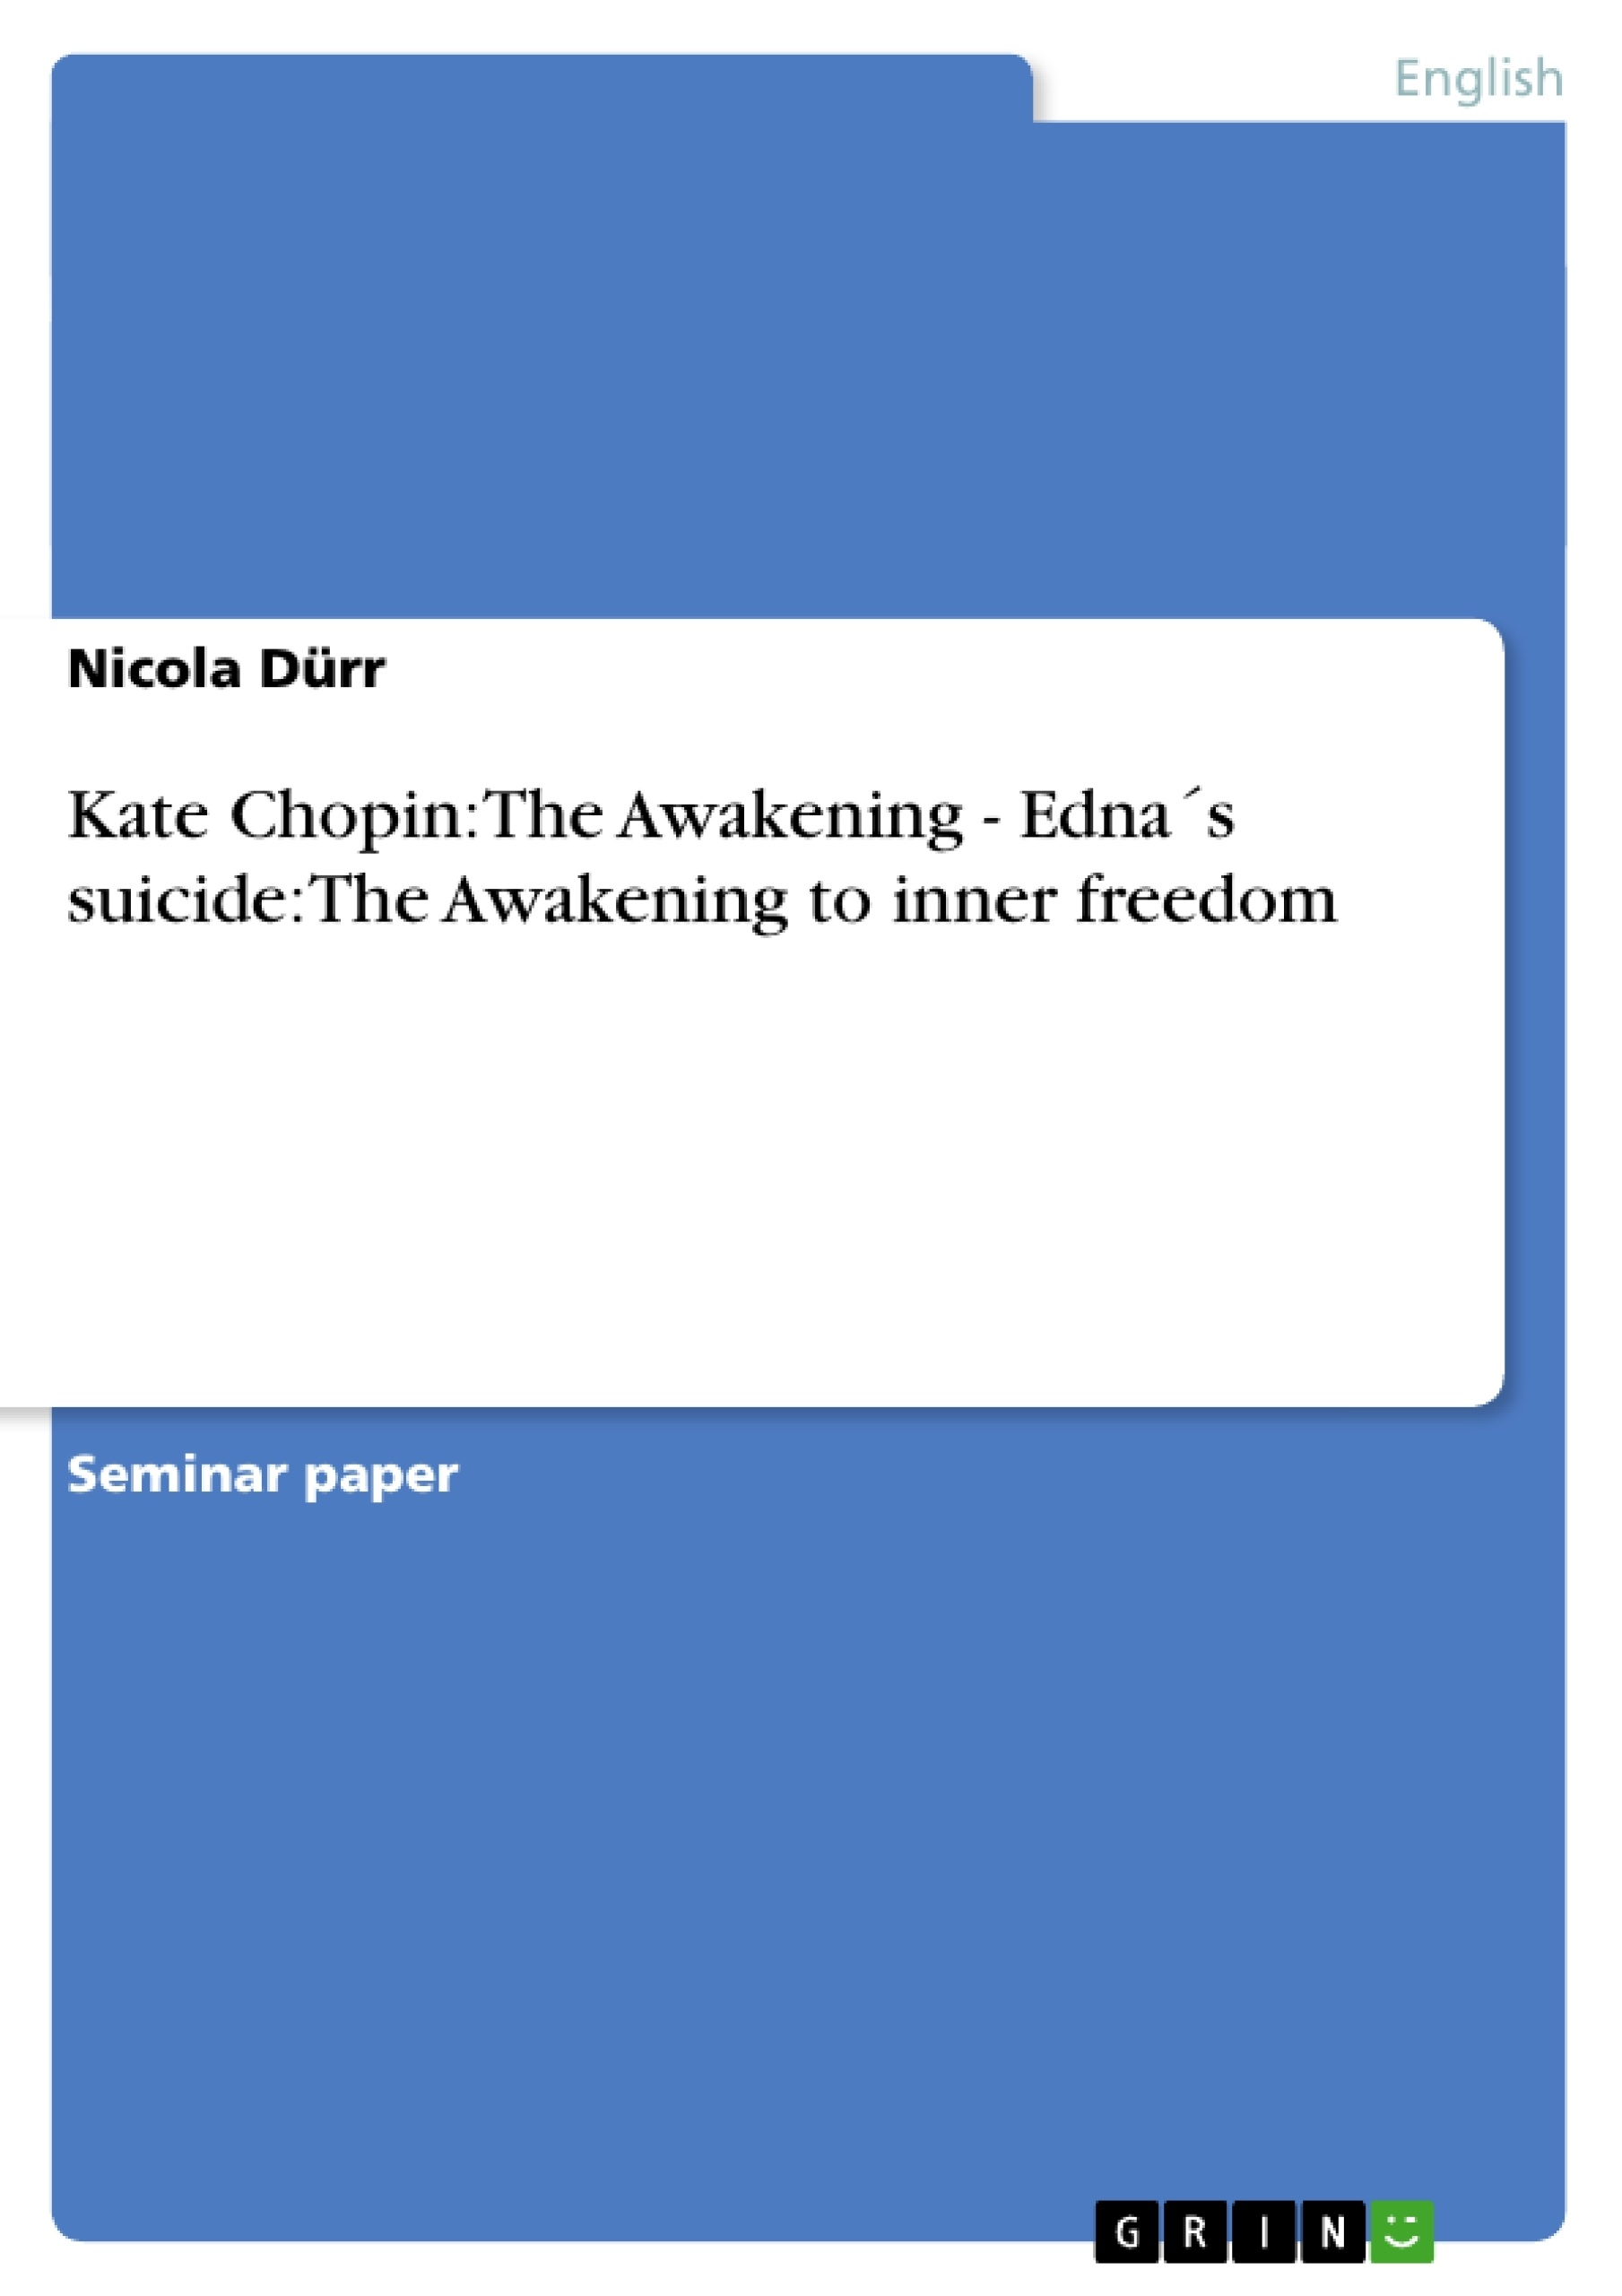 Title: Kate Chopin: The Awakening - Edna´s suicide: The Awakening to inner freedom